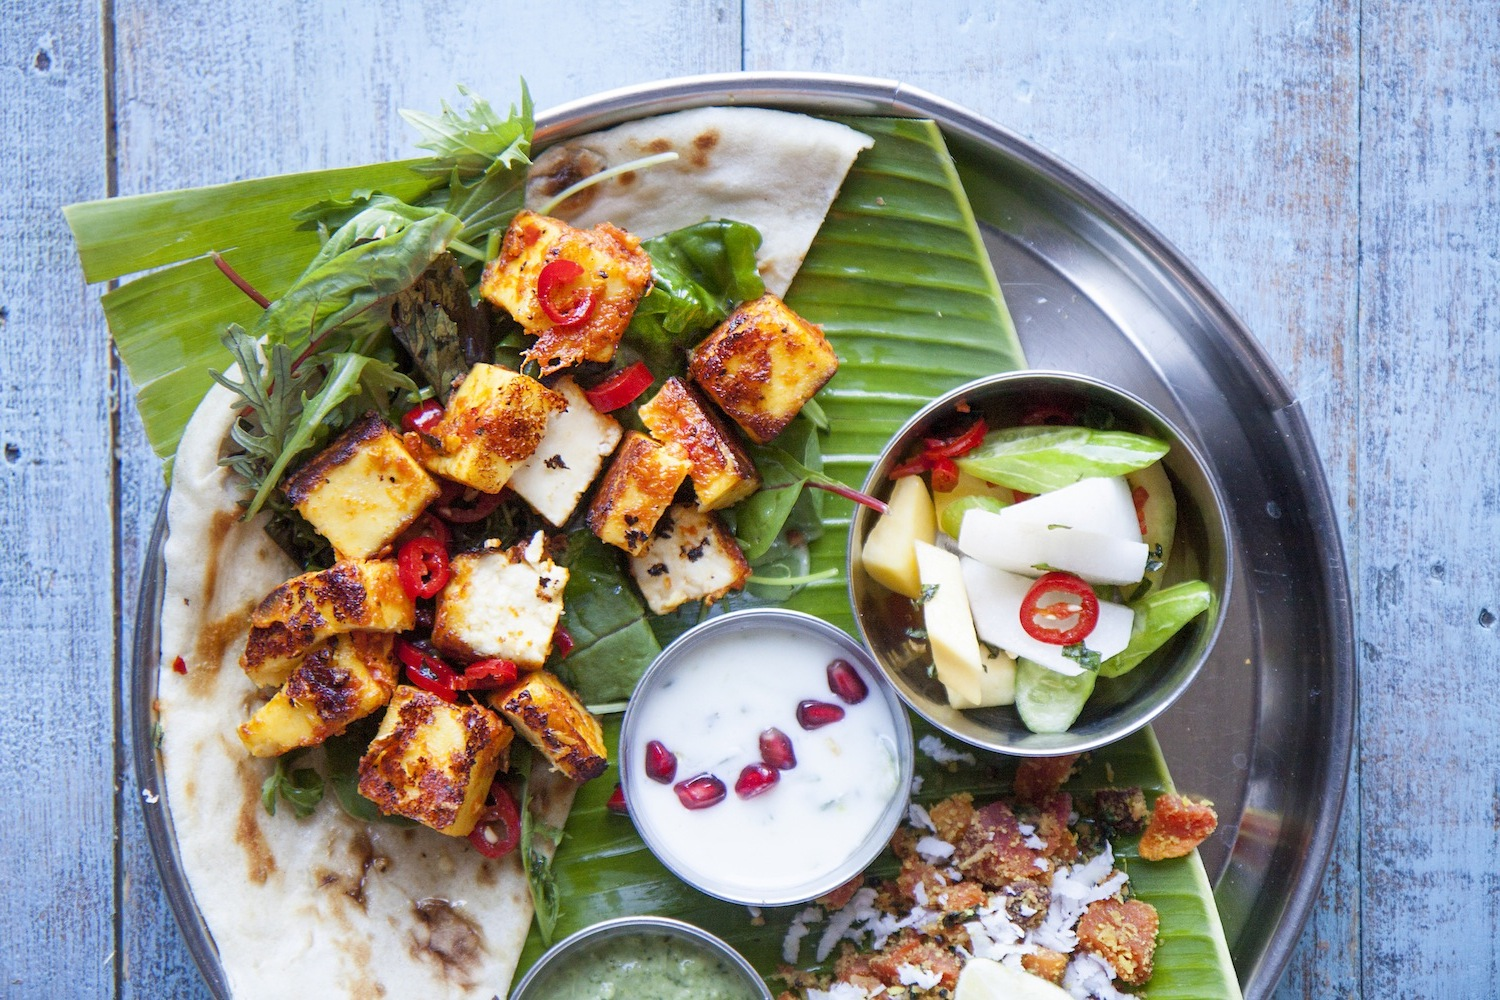 Paneer shish kebab - fresh, unsalted white cheese chargrilled in a sticky mango marinade.